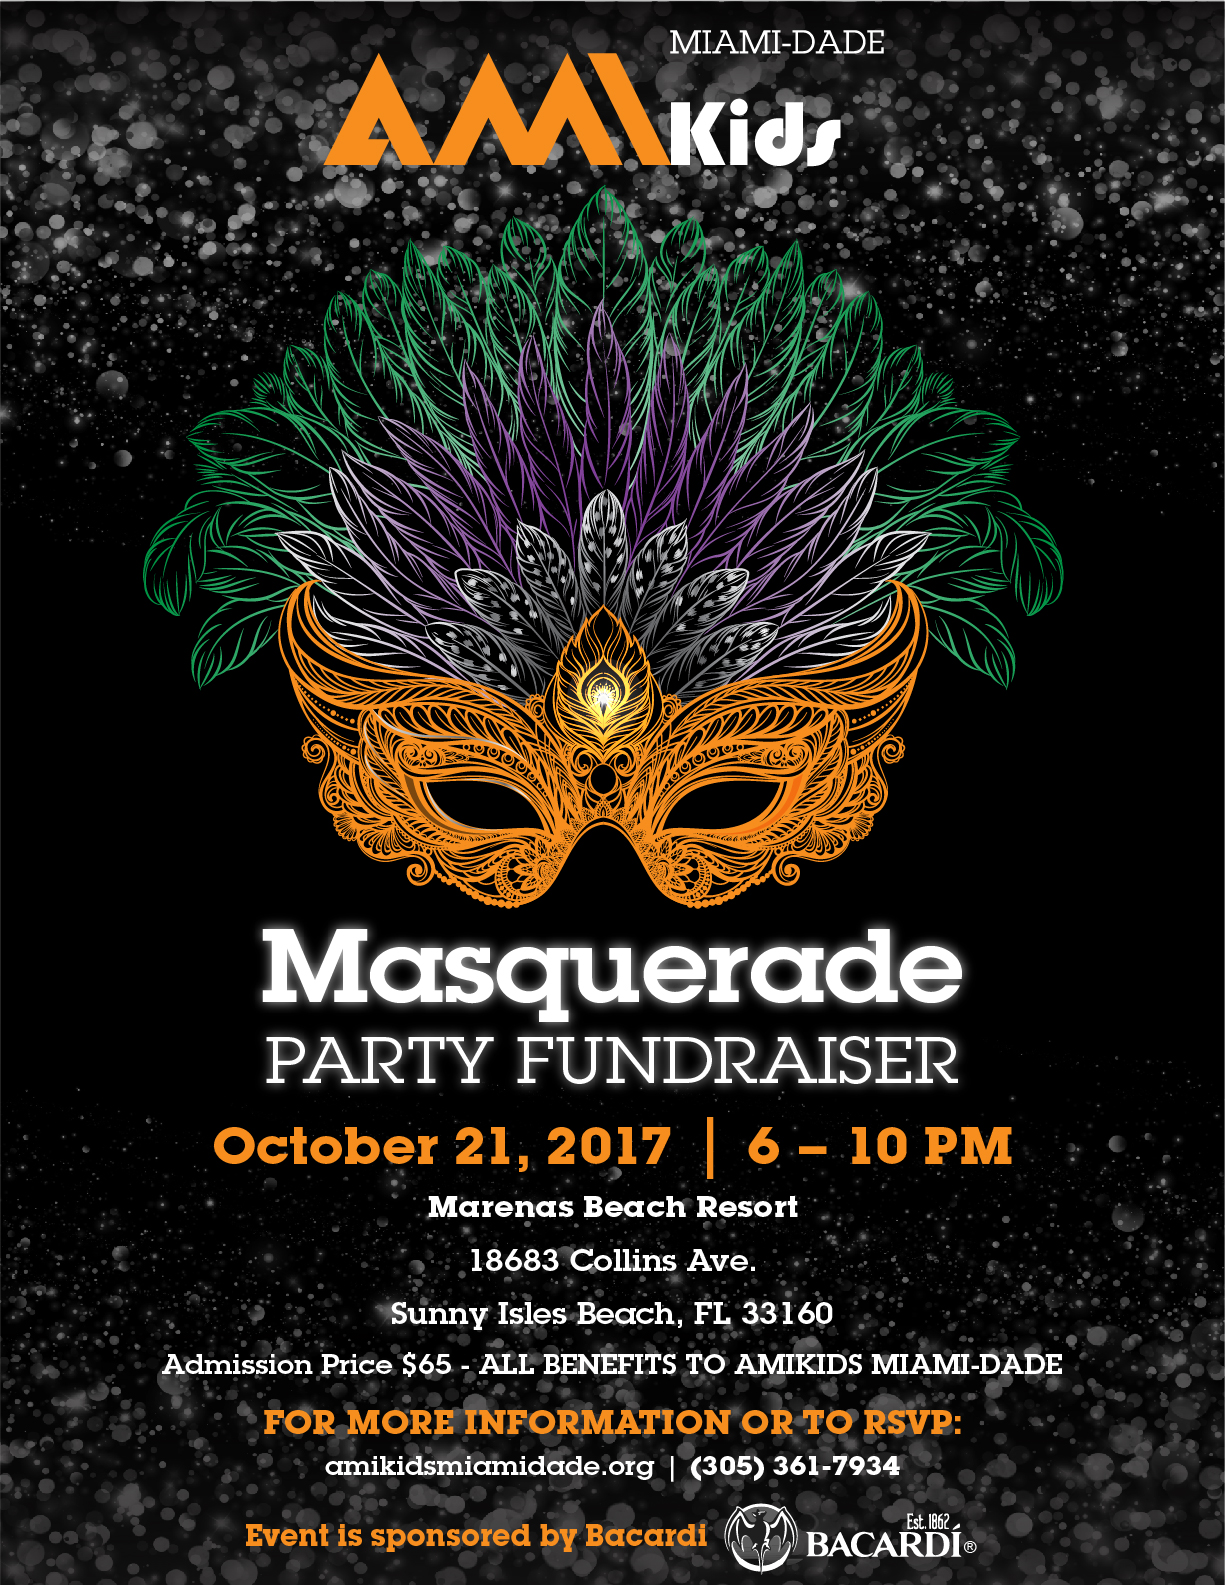 AMIkids_MD_Digital_Web_Invite_Masquerade_2017